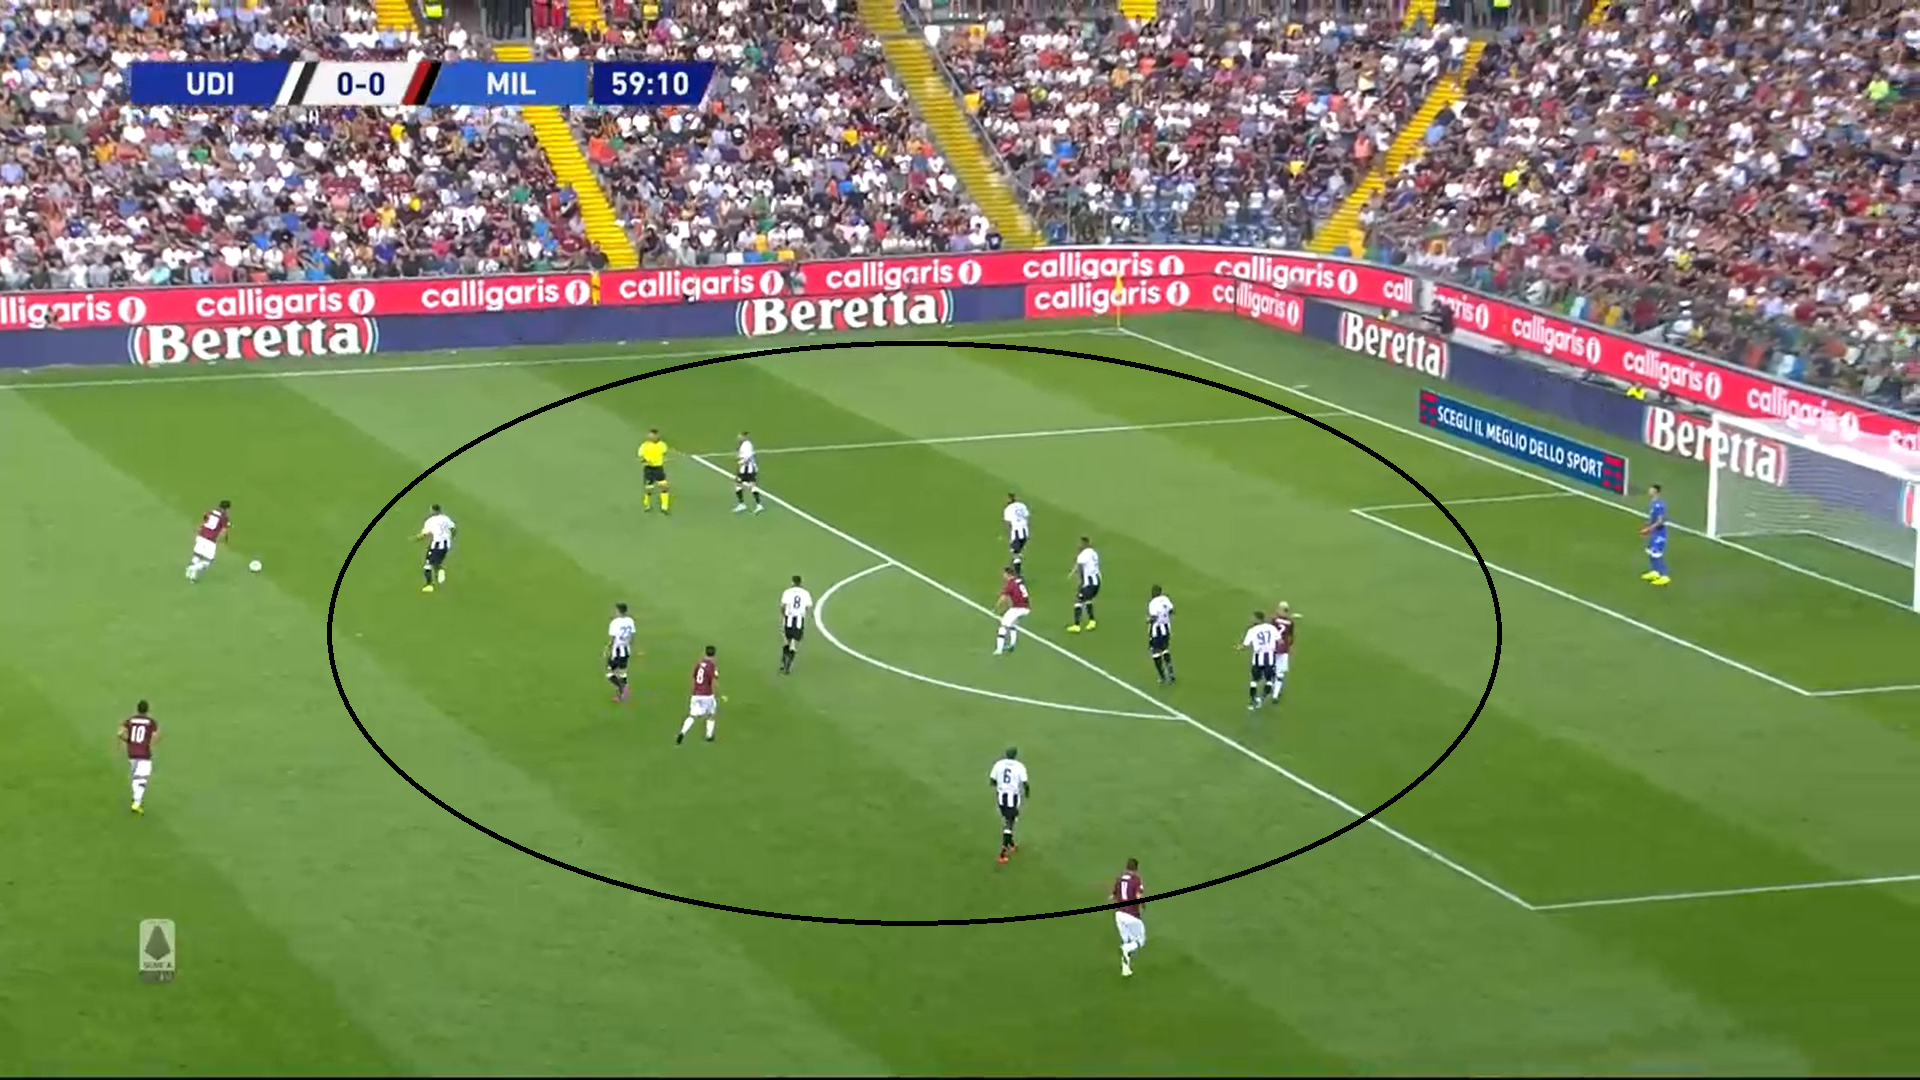 Serie A 2019/20 Udinese vs Milan tactical analysis tactics